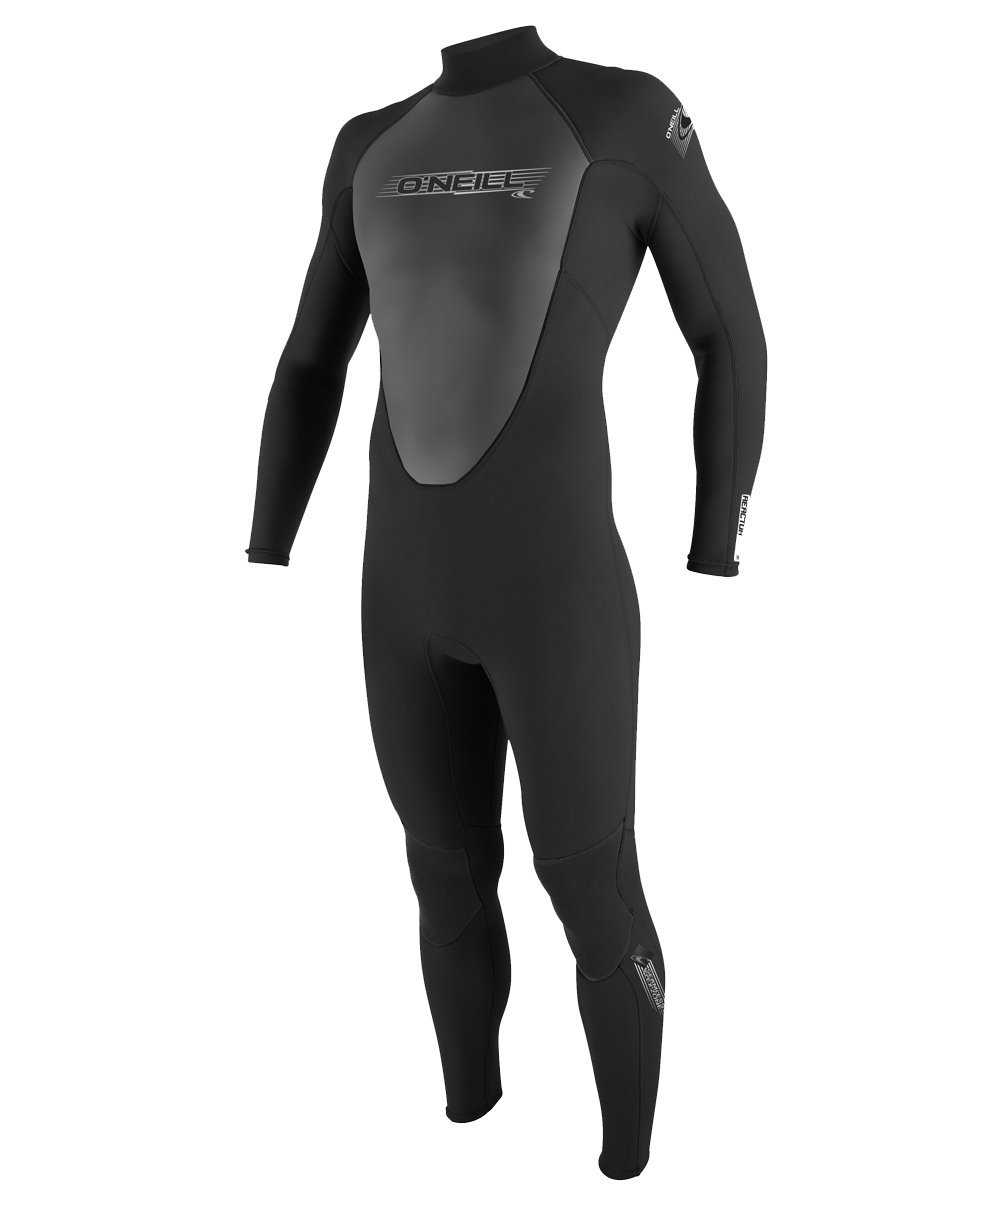 oNeil XXXL wetsuits review